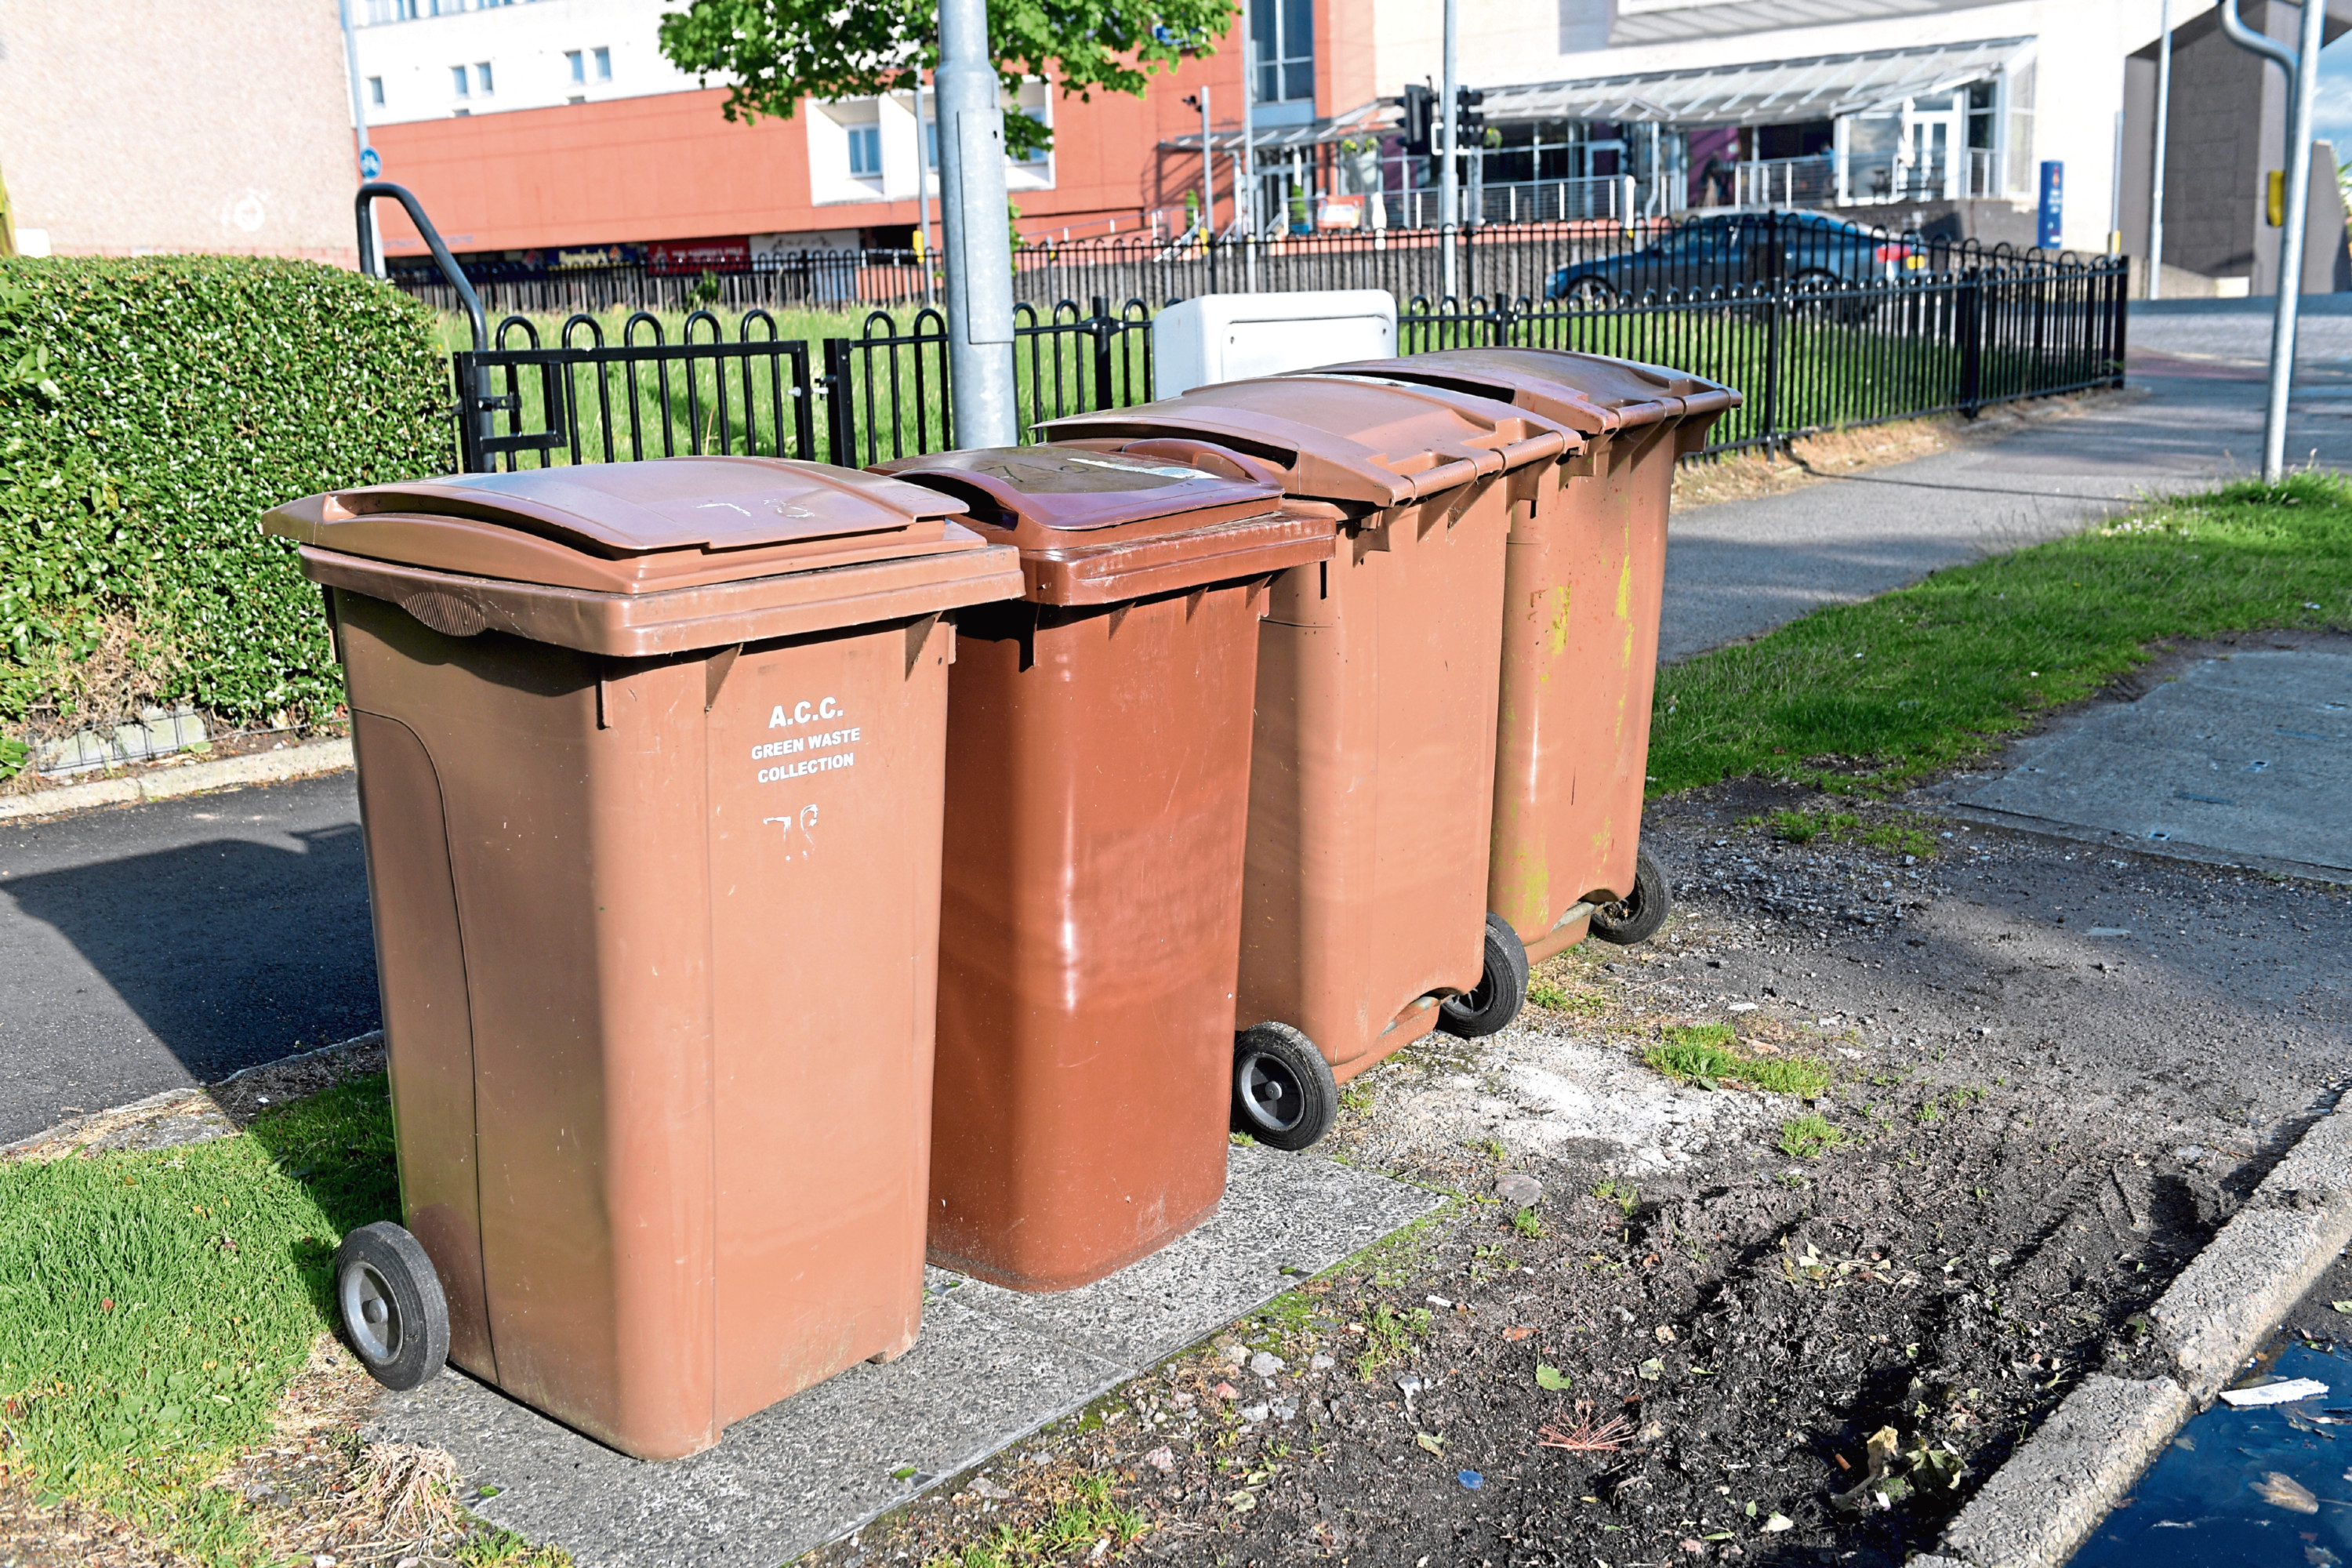 Aberdeen residents will need to pay a £30 a year charge for their garden waste to be uplifted